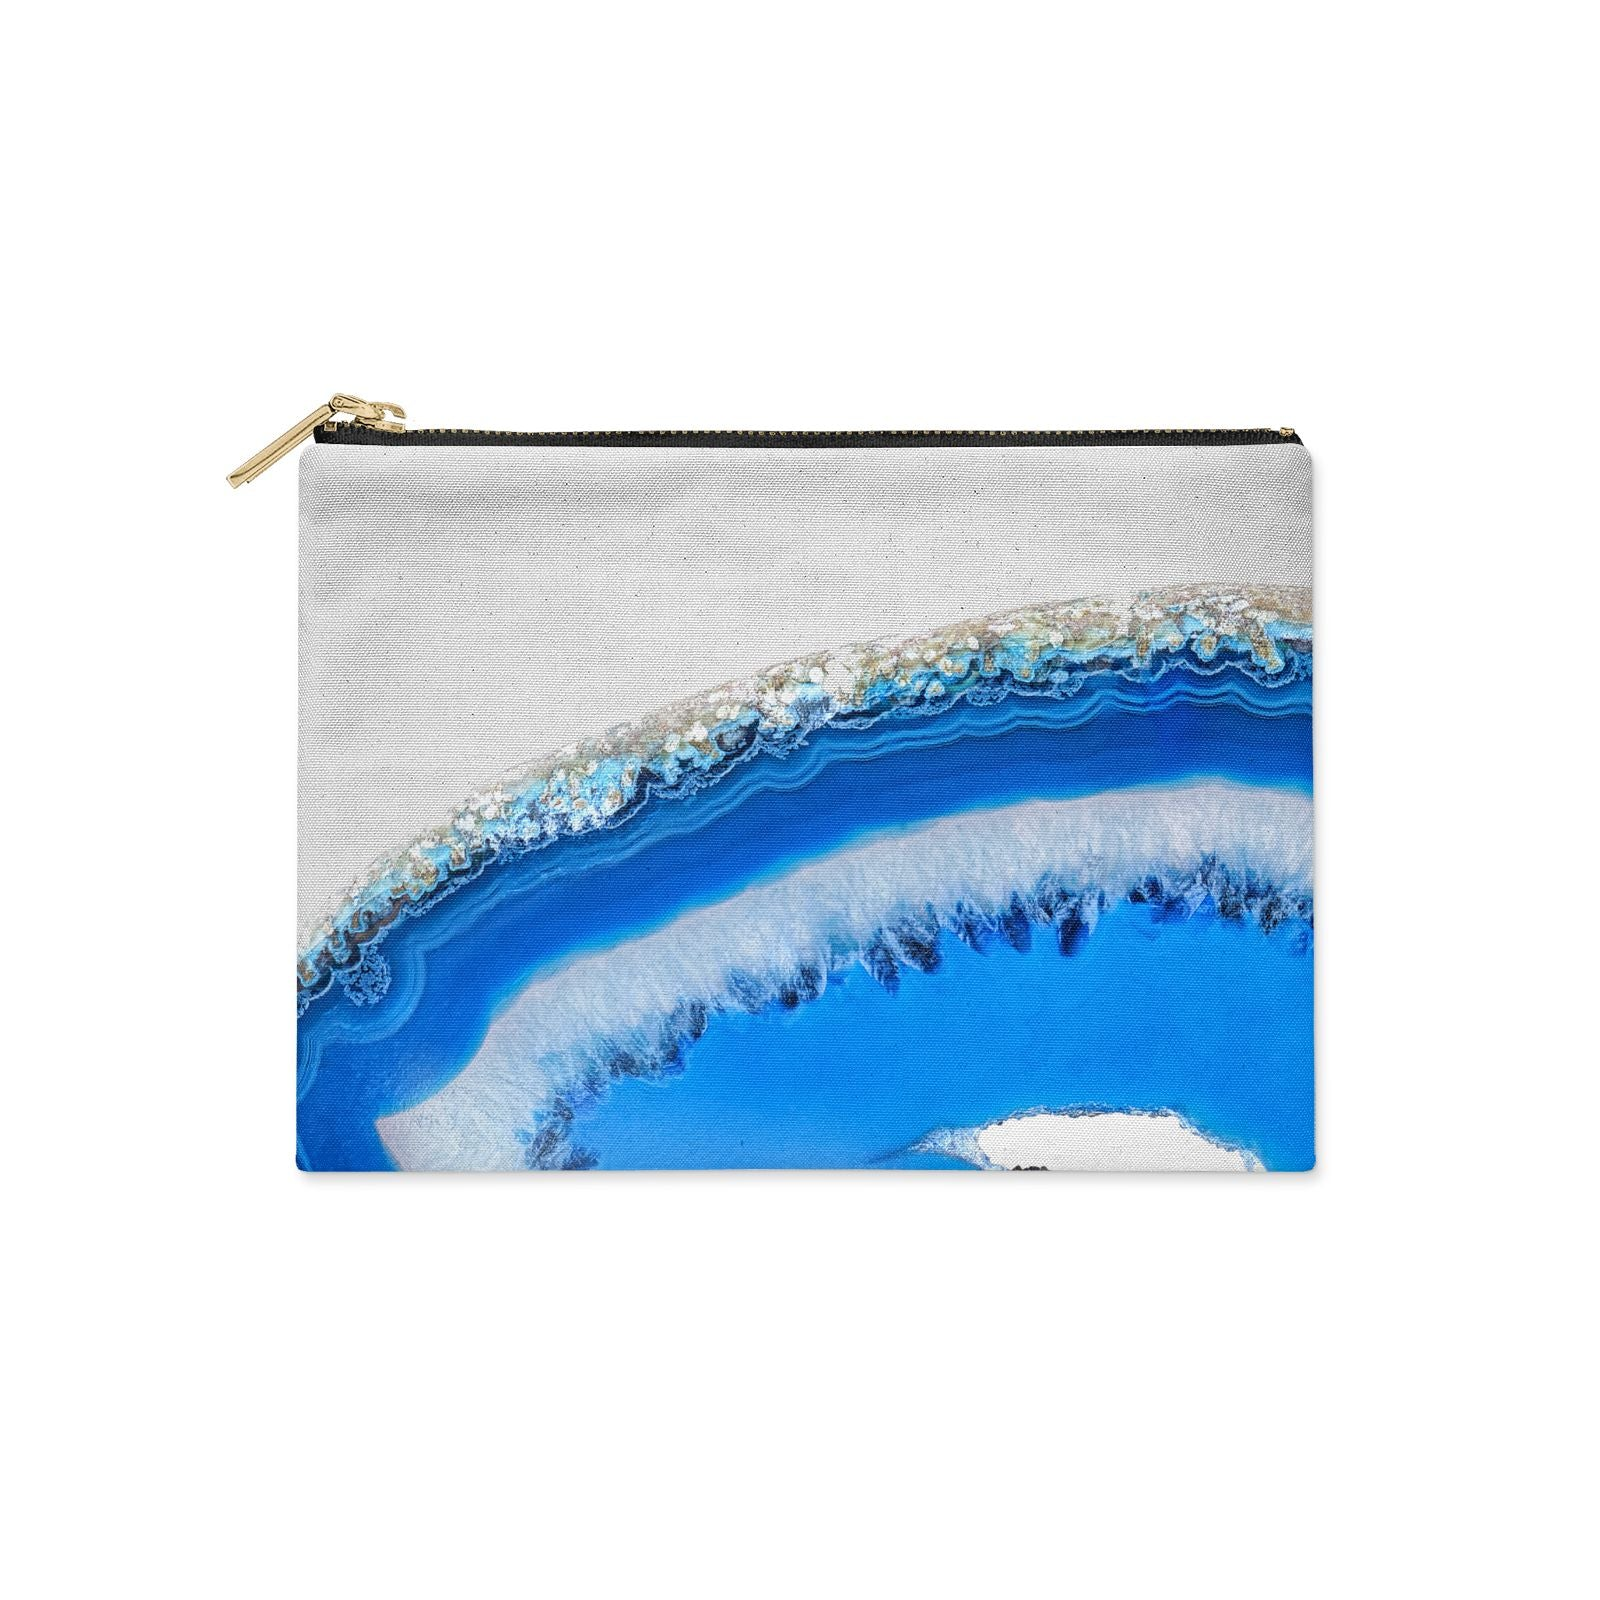 Agate Blue Clutch Bag Zipper Pouch